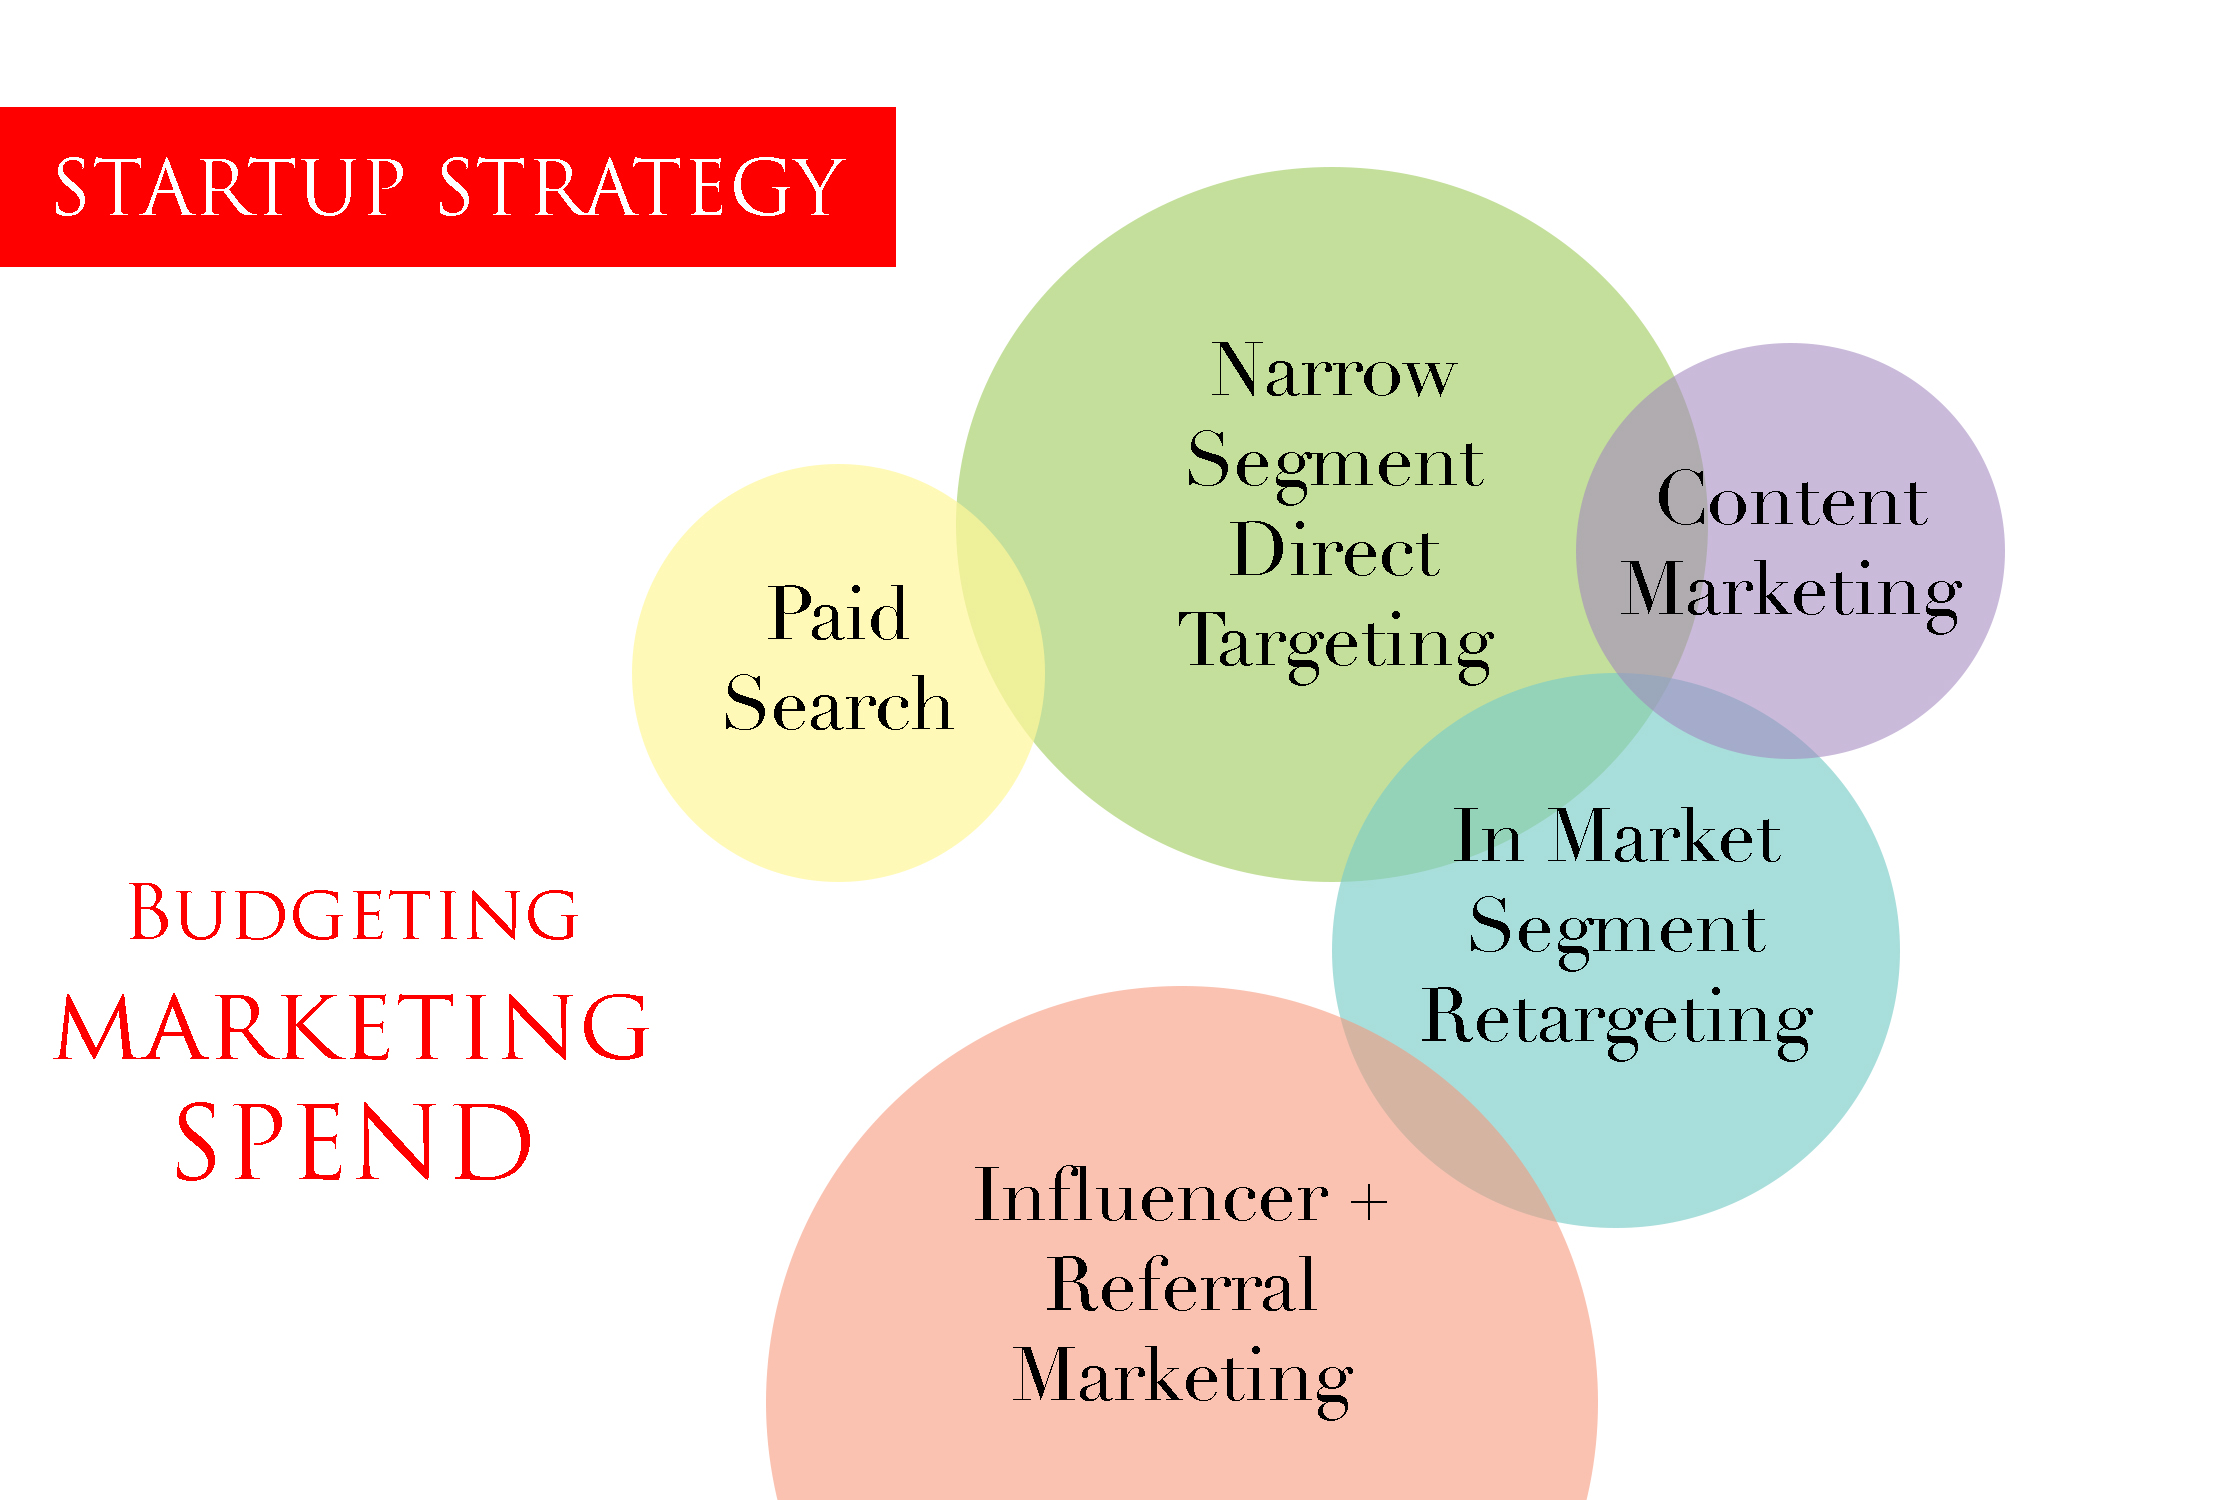 EARLY-STAGE-STARTUP-marketing-SPEND-ALLOCATION.jpg